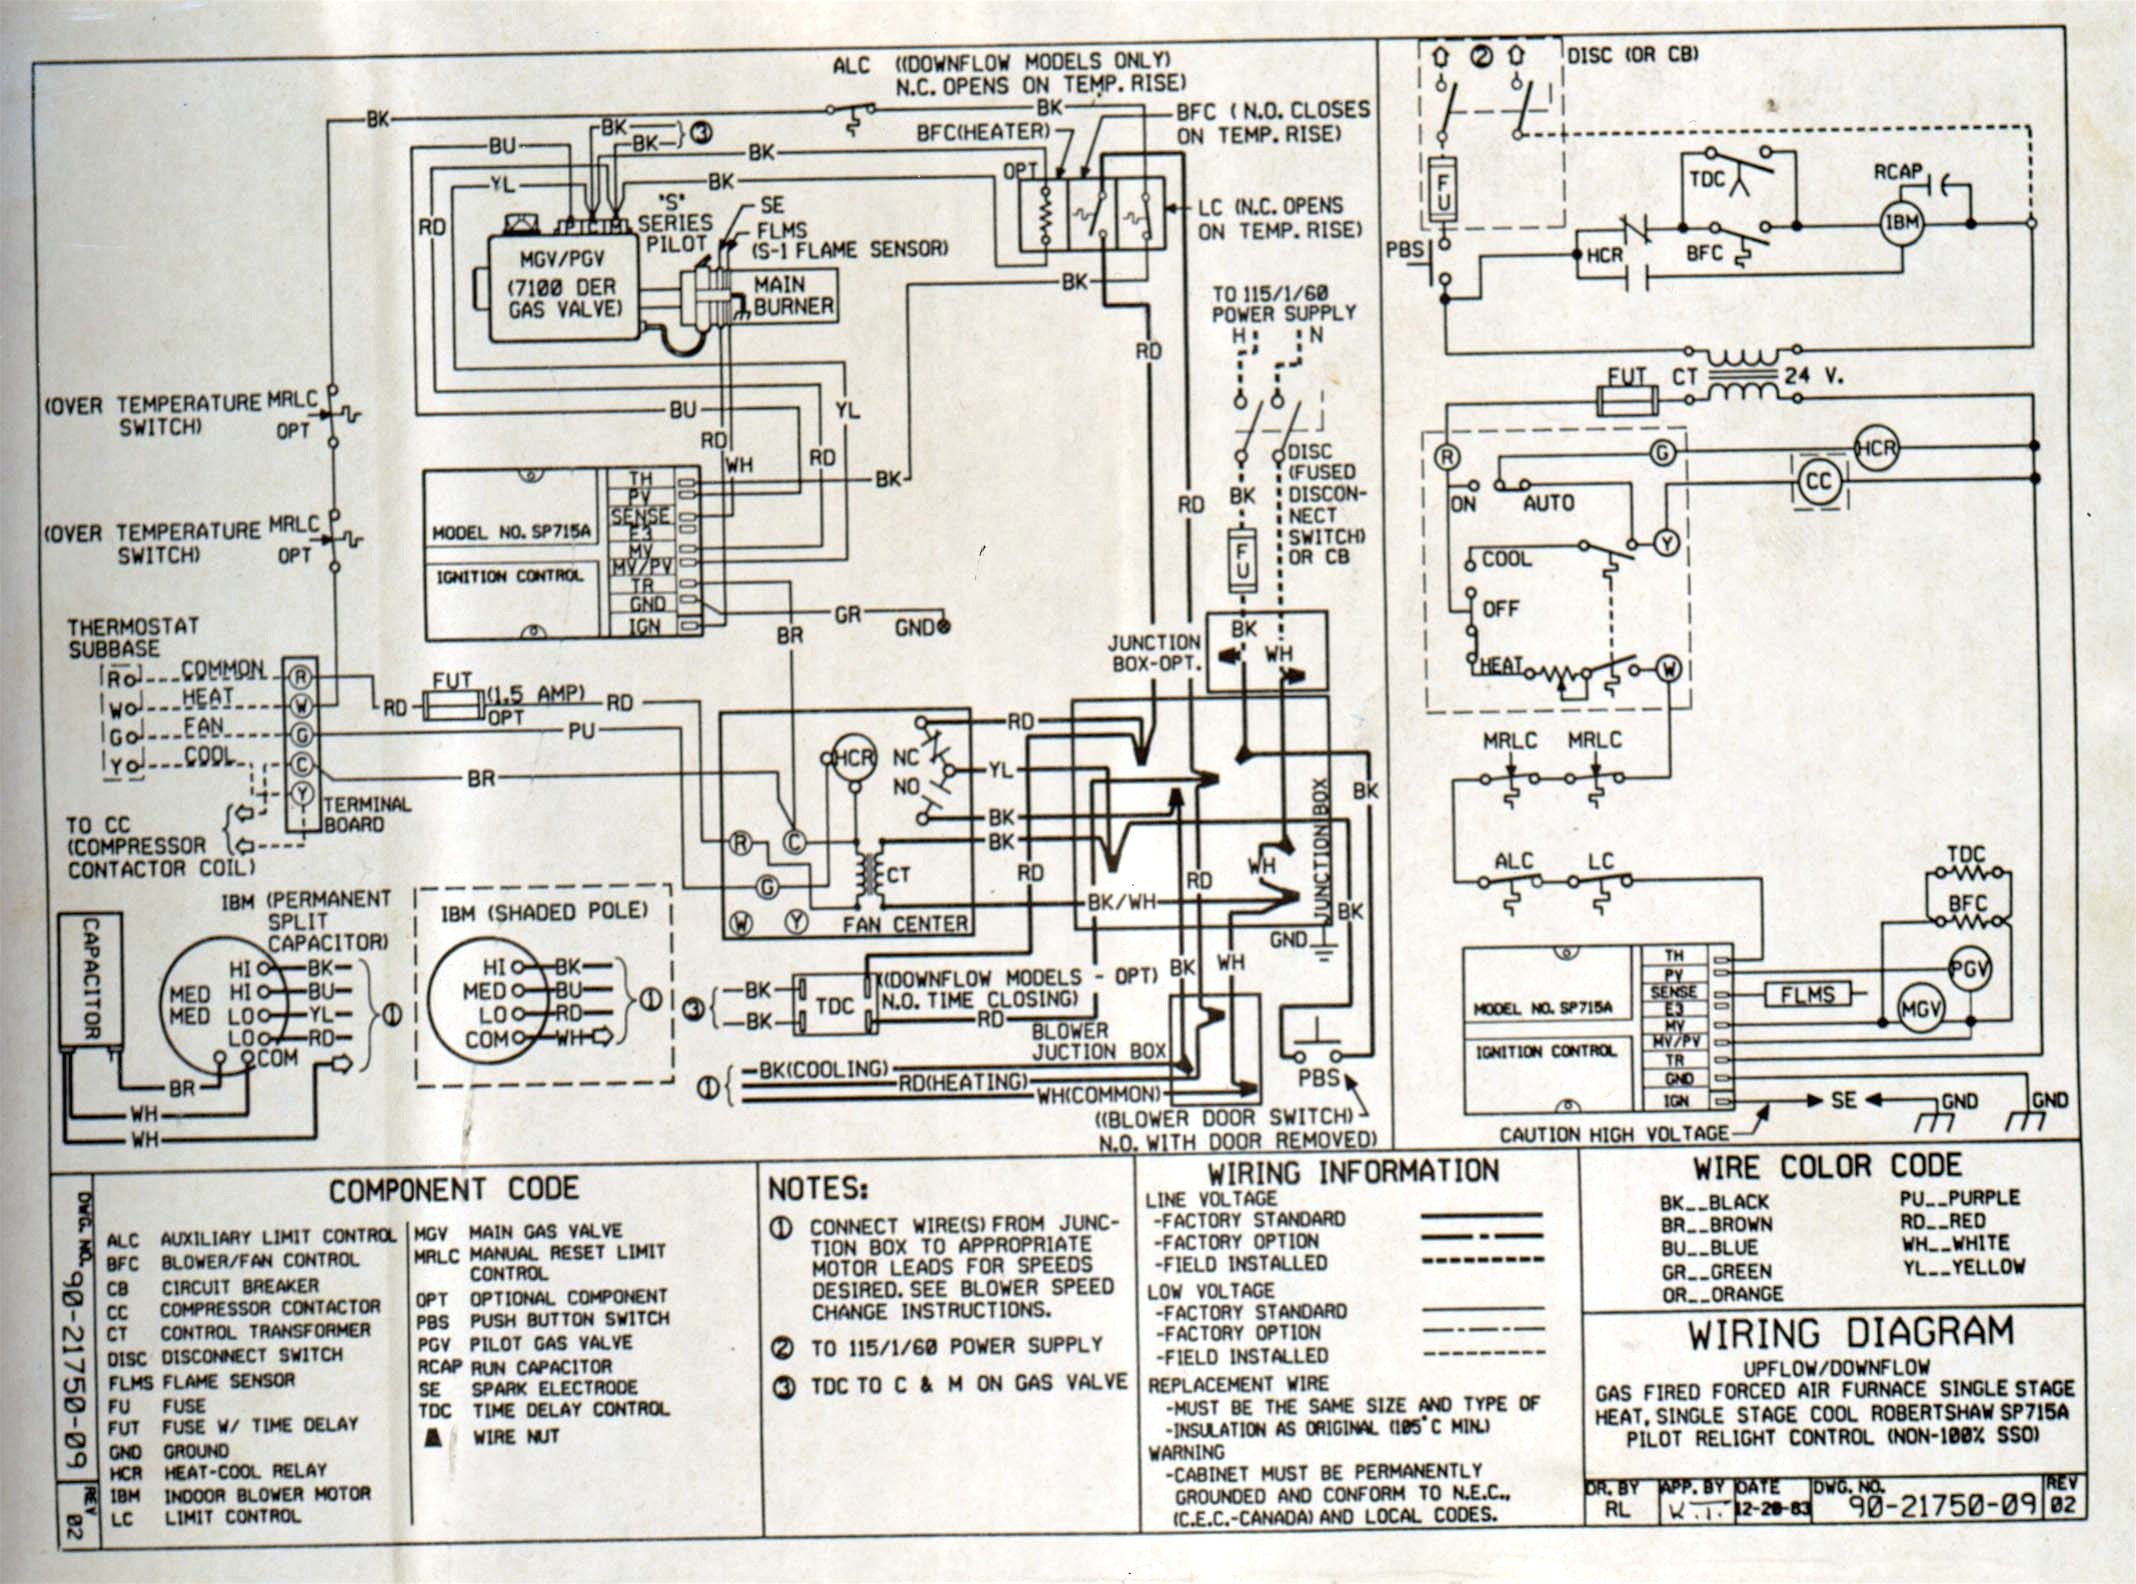 Payne Air Handler Wiring Diagram Expert Schematics Warn 16 5ti Package Unit Sample Coleman Conditioning